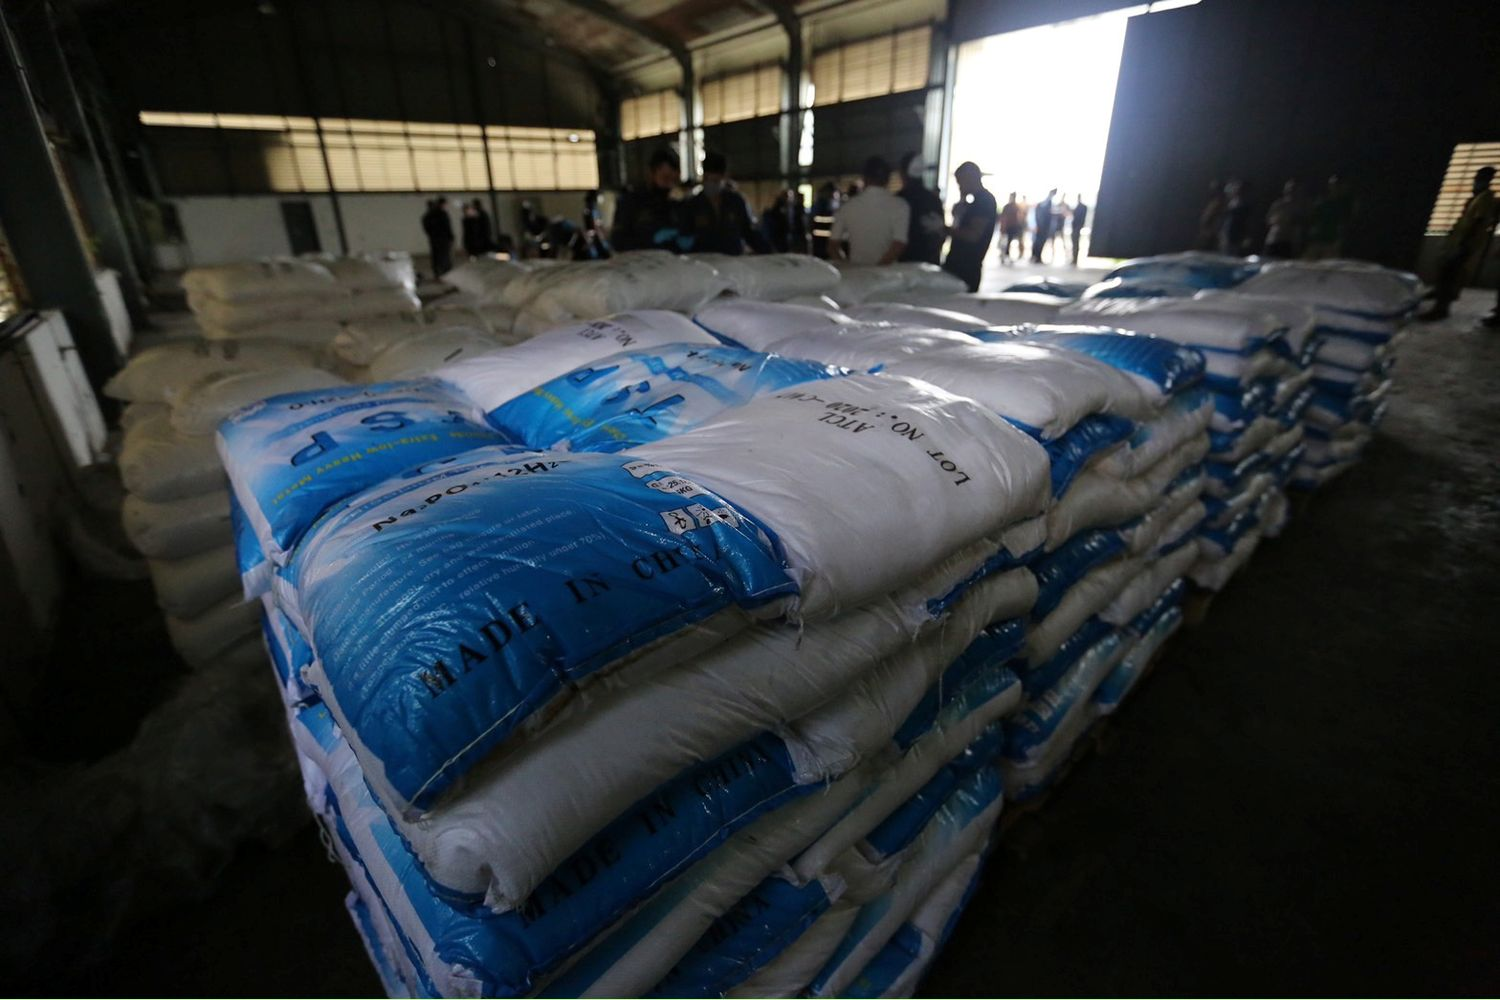 View of the product after officials seized 11.5 tonnes of ketamine worth nearly 30 billion baht at a warehouse in Chachoengsao province on Thursday. (Office of the Narcotics Control Board handout via Reuters)